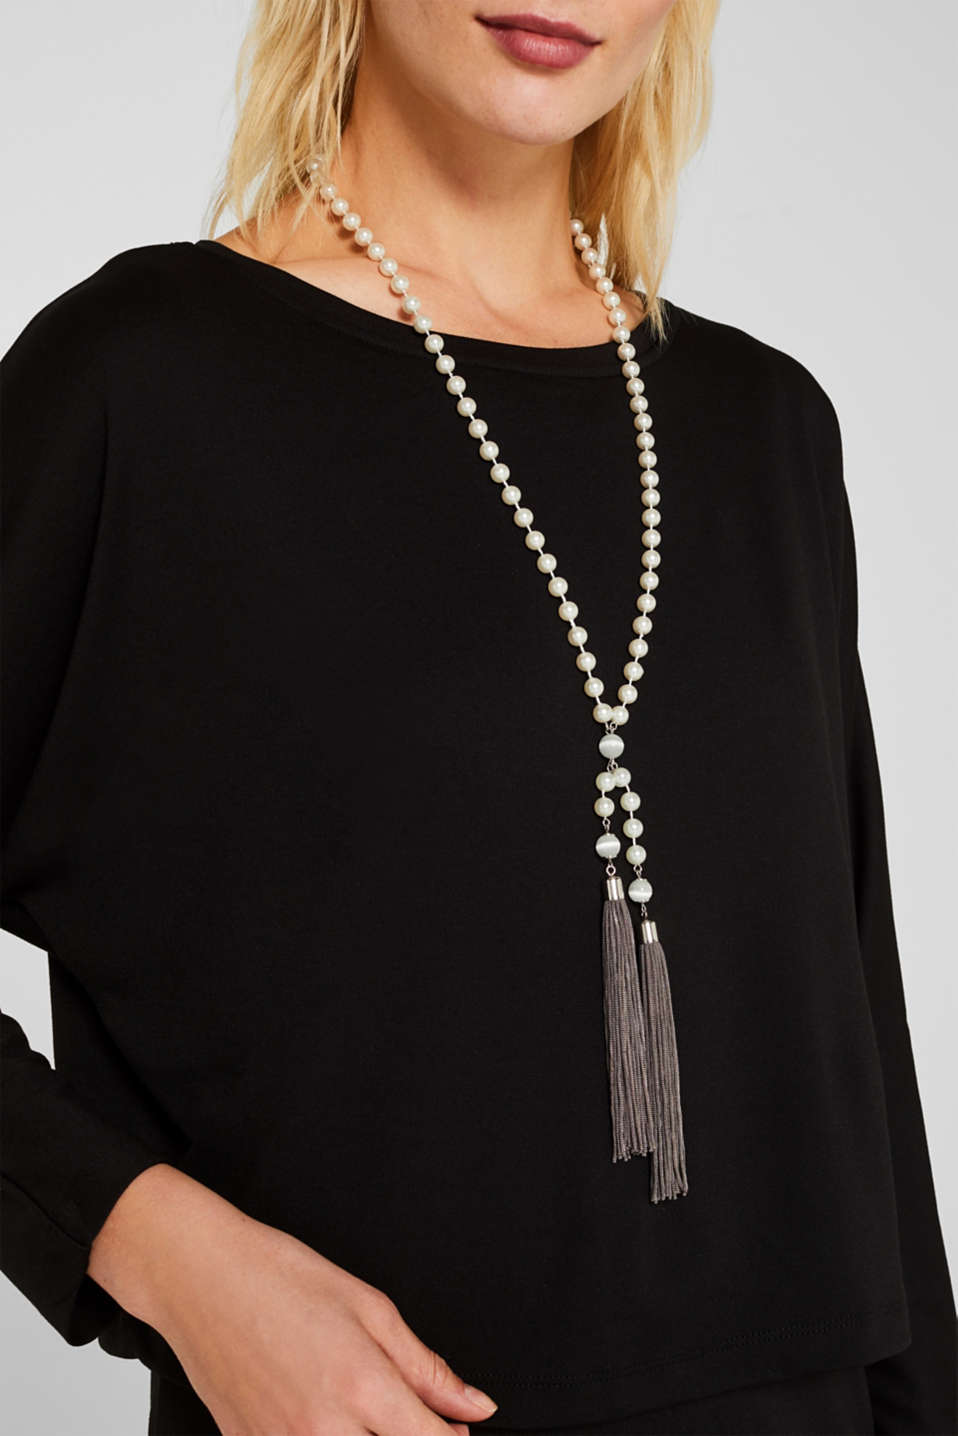 Faux pearl necklace with tassels, LC1COLOR, detail image number 2